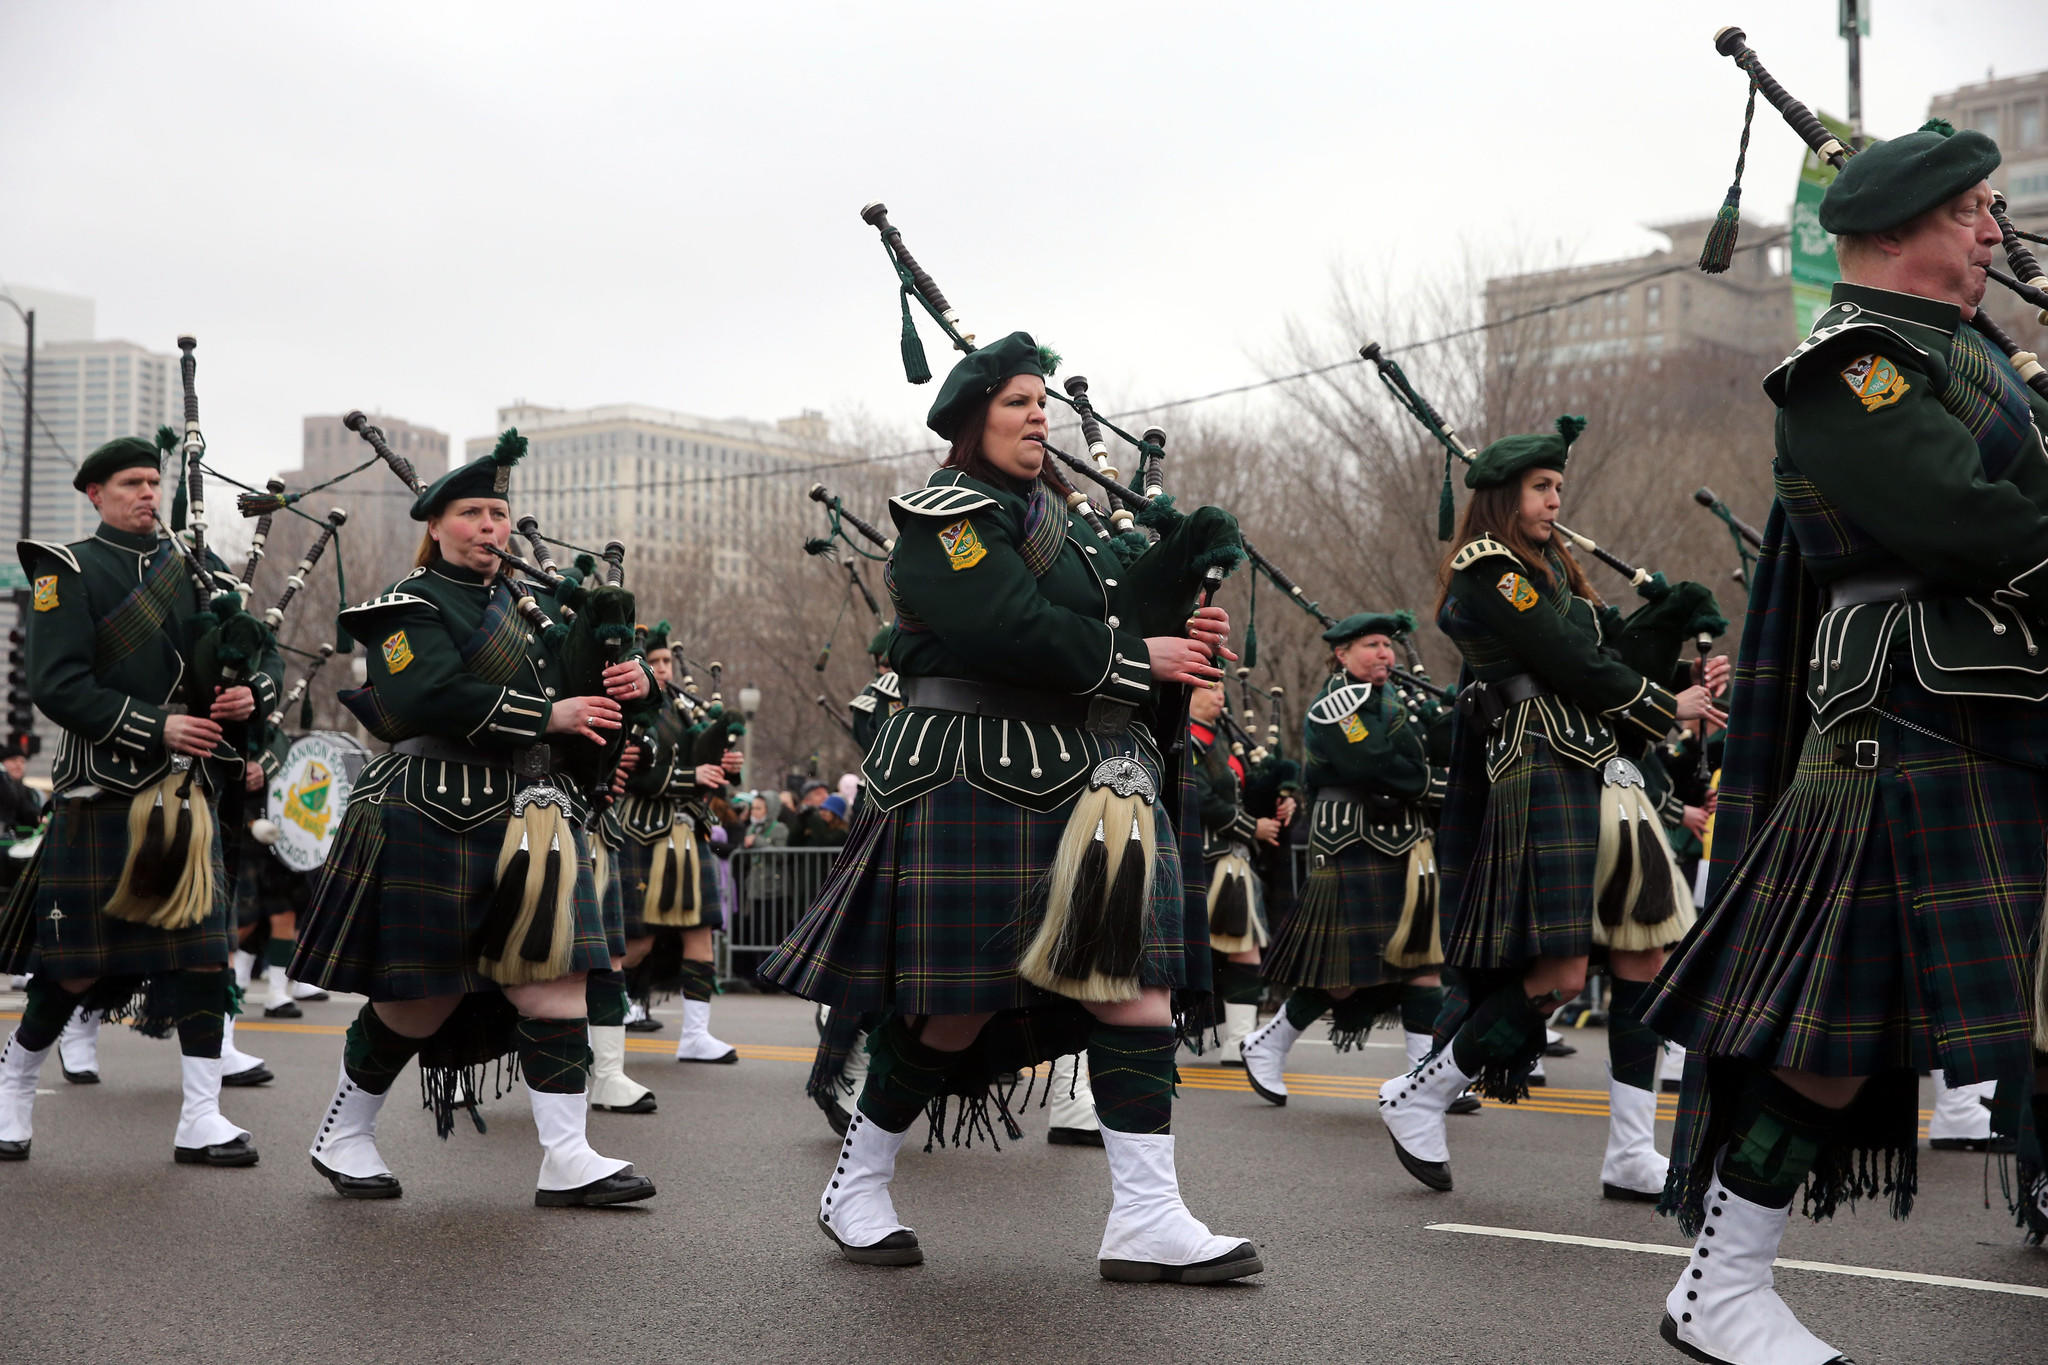 Bagpipers play in Chicago's St. Patrick's Day celebration in 2013.